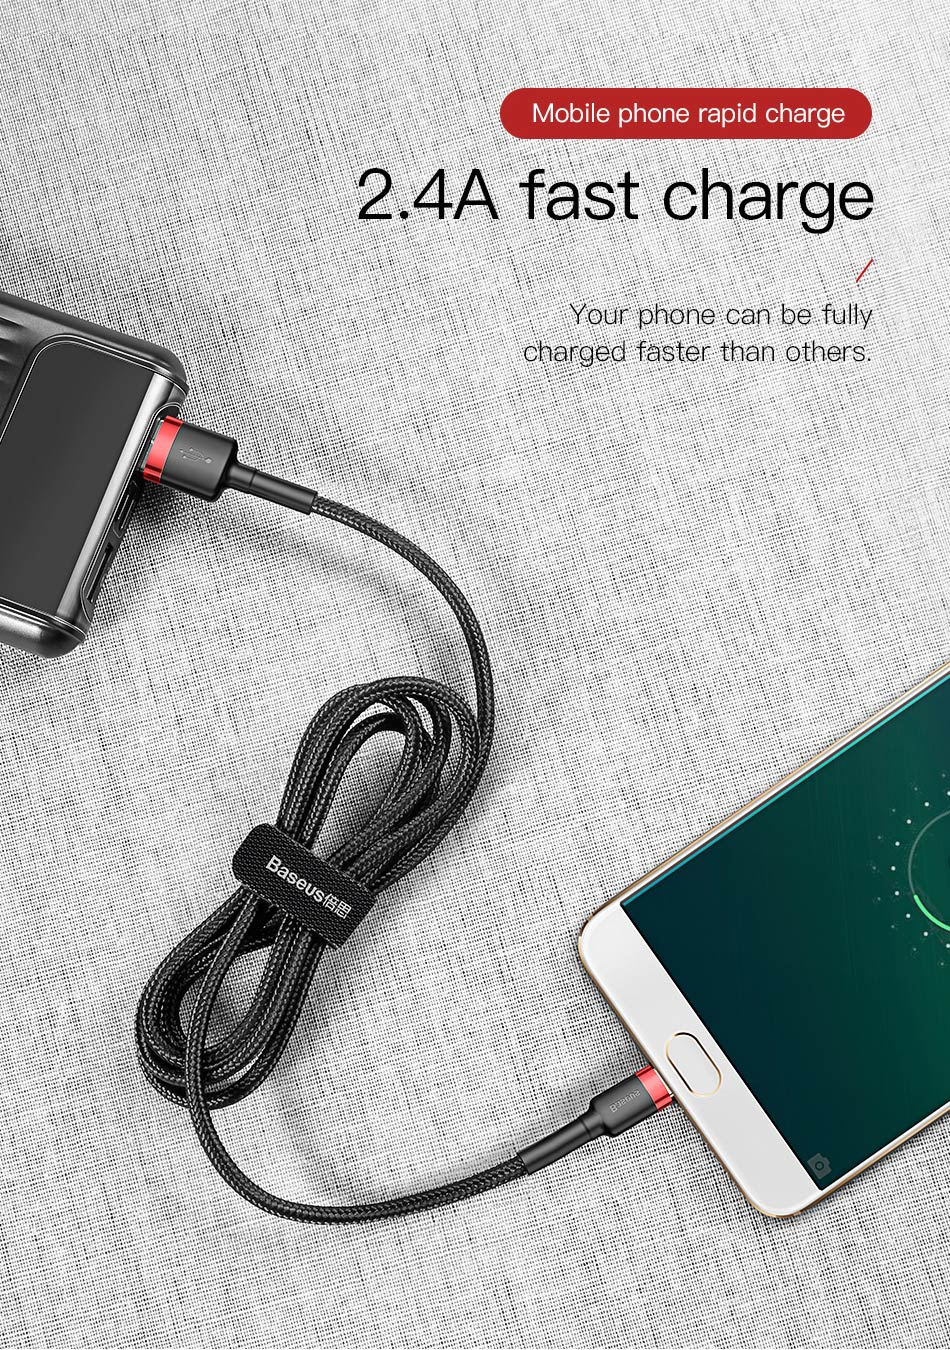 Baseus 2.4A Reversible Micro USB High-density Braided Fast Charging Data Cable For Smartphone Tablet